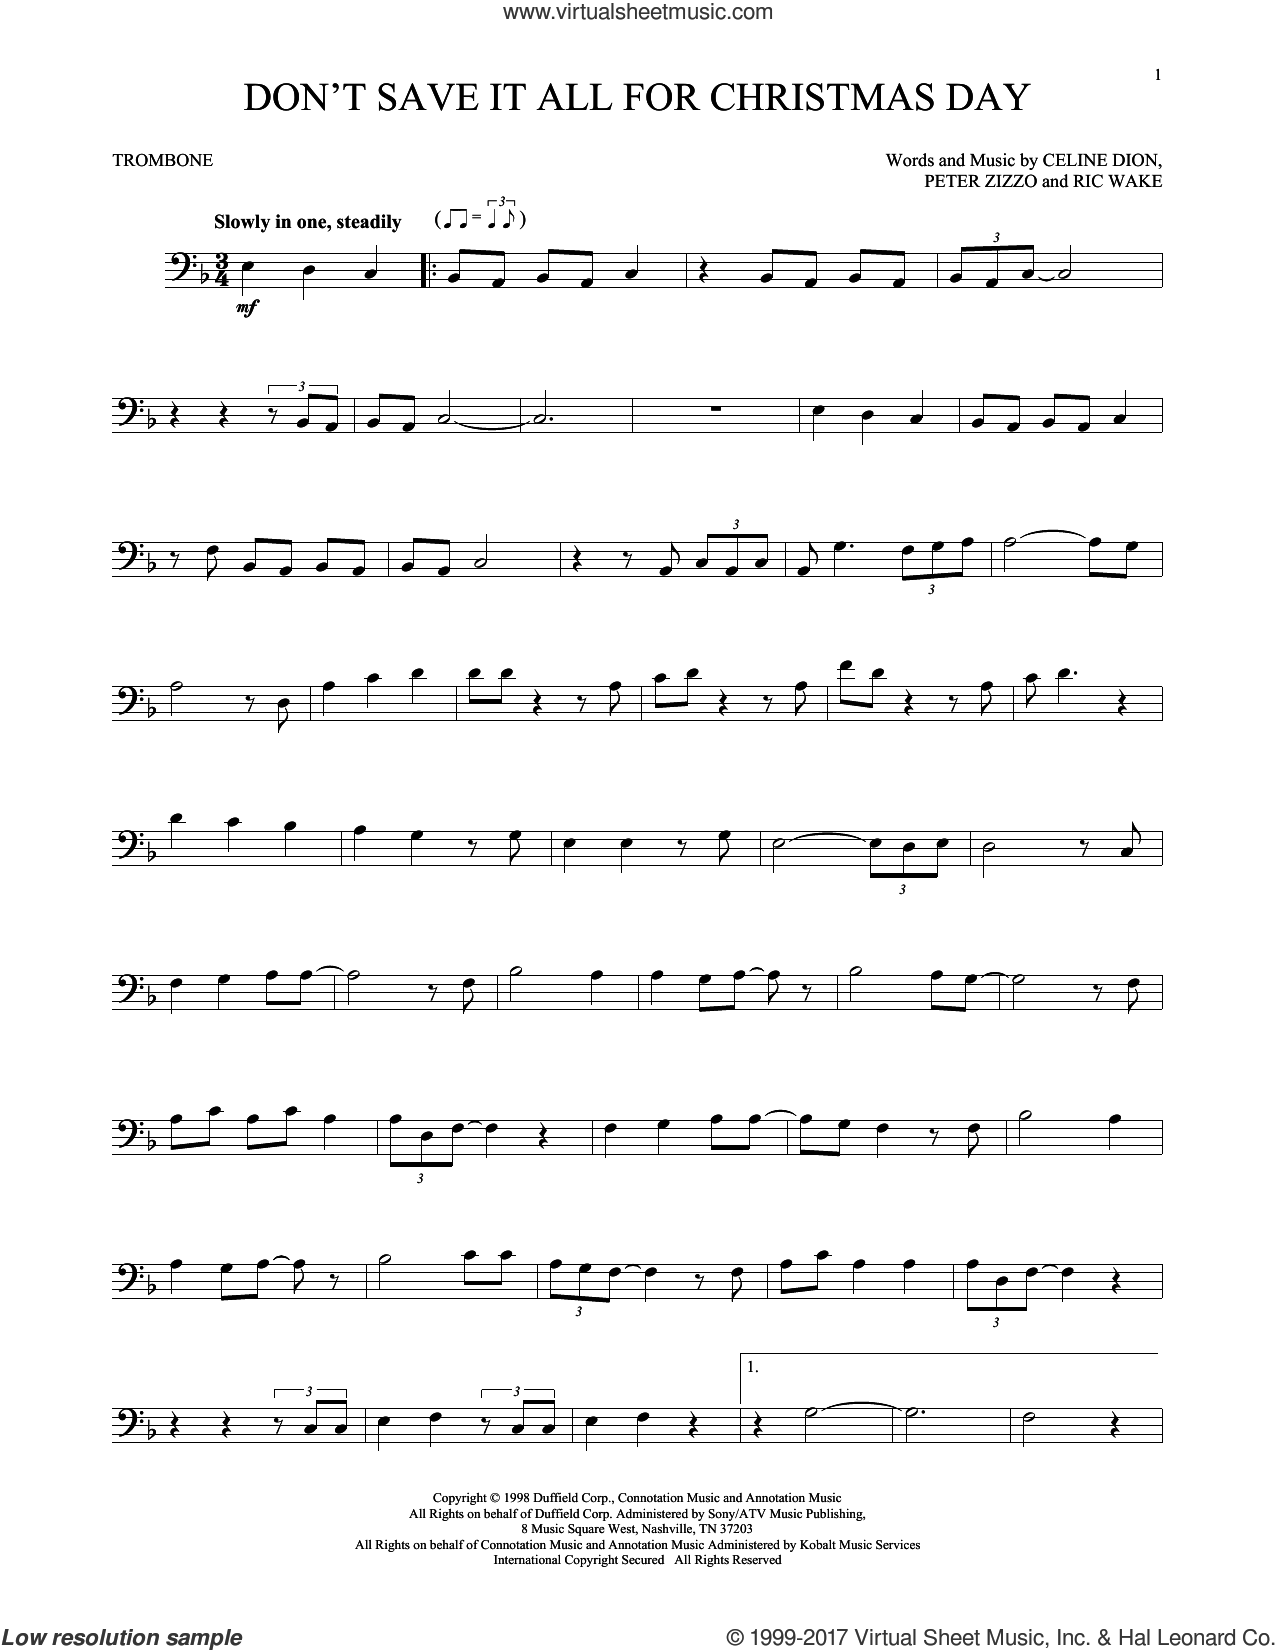 Don't Save It All For Christmas Day sheet music for trombone solo by Celine Dion, Avalon, Peter Zizzo and Ric Wake, intermediate skill level